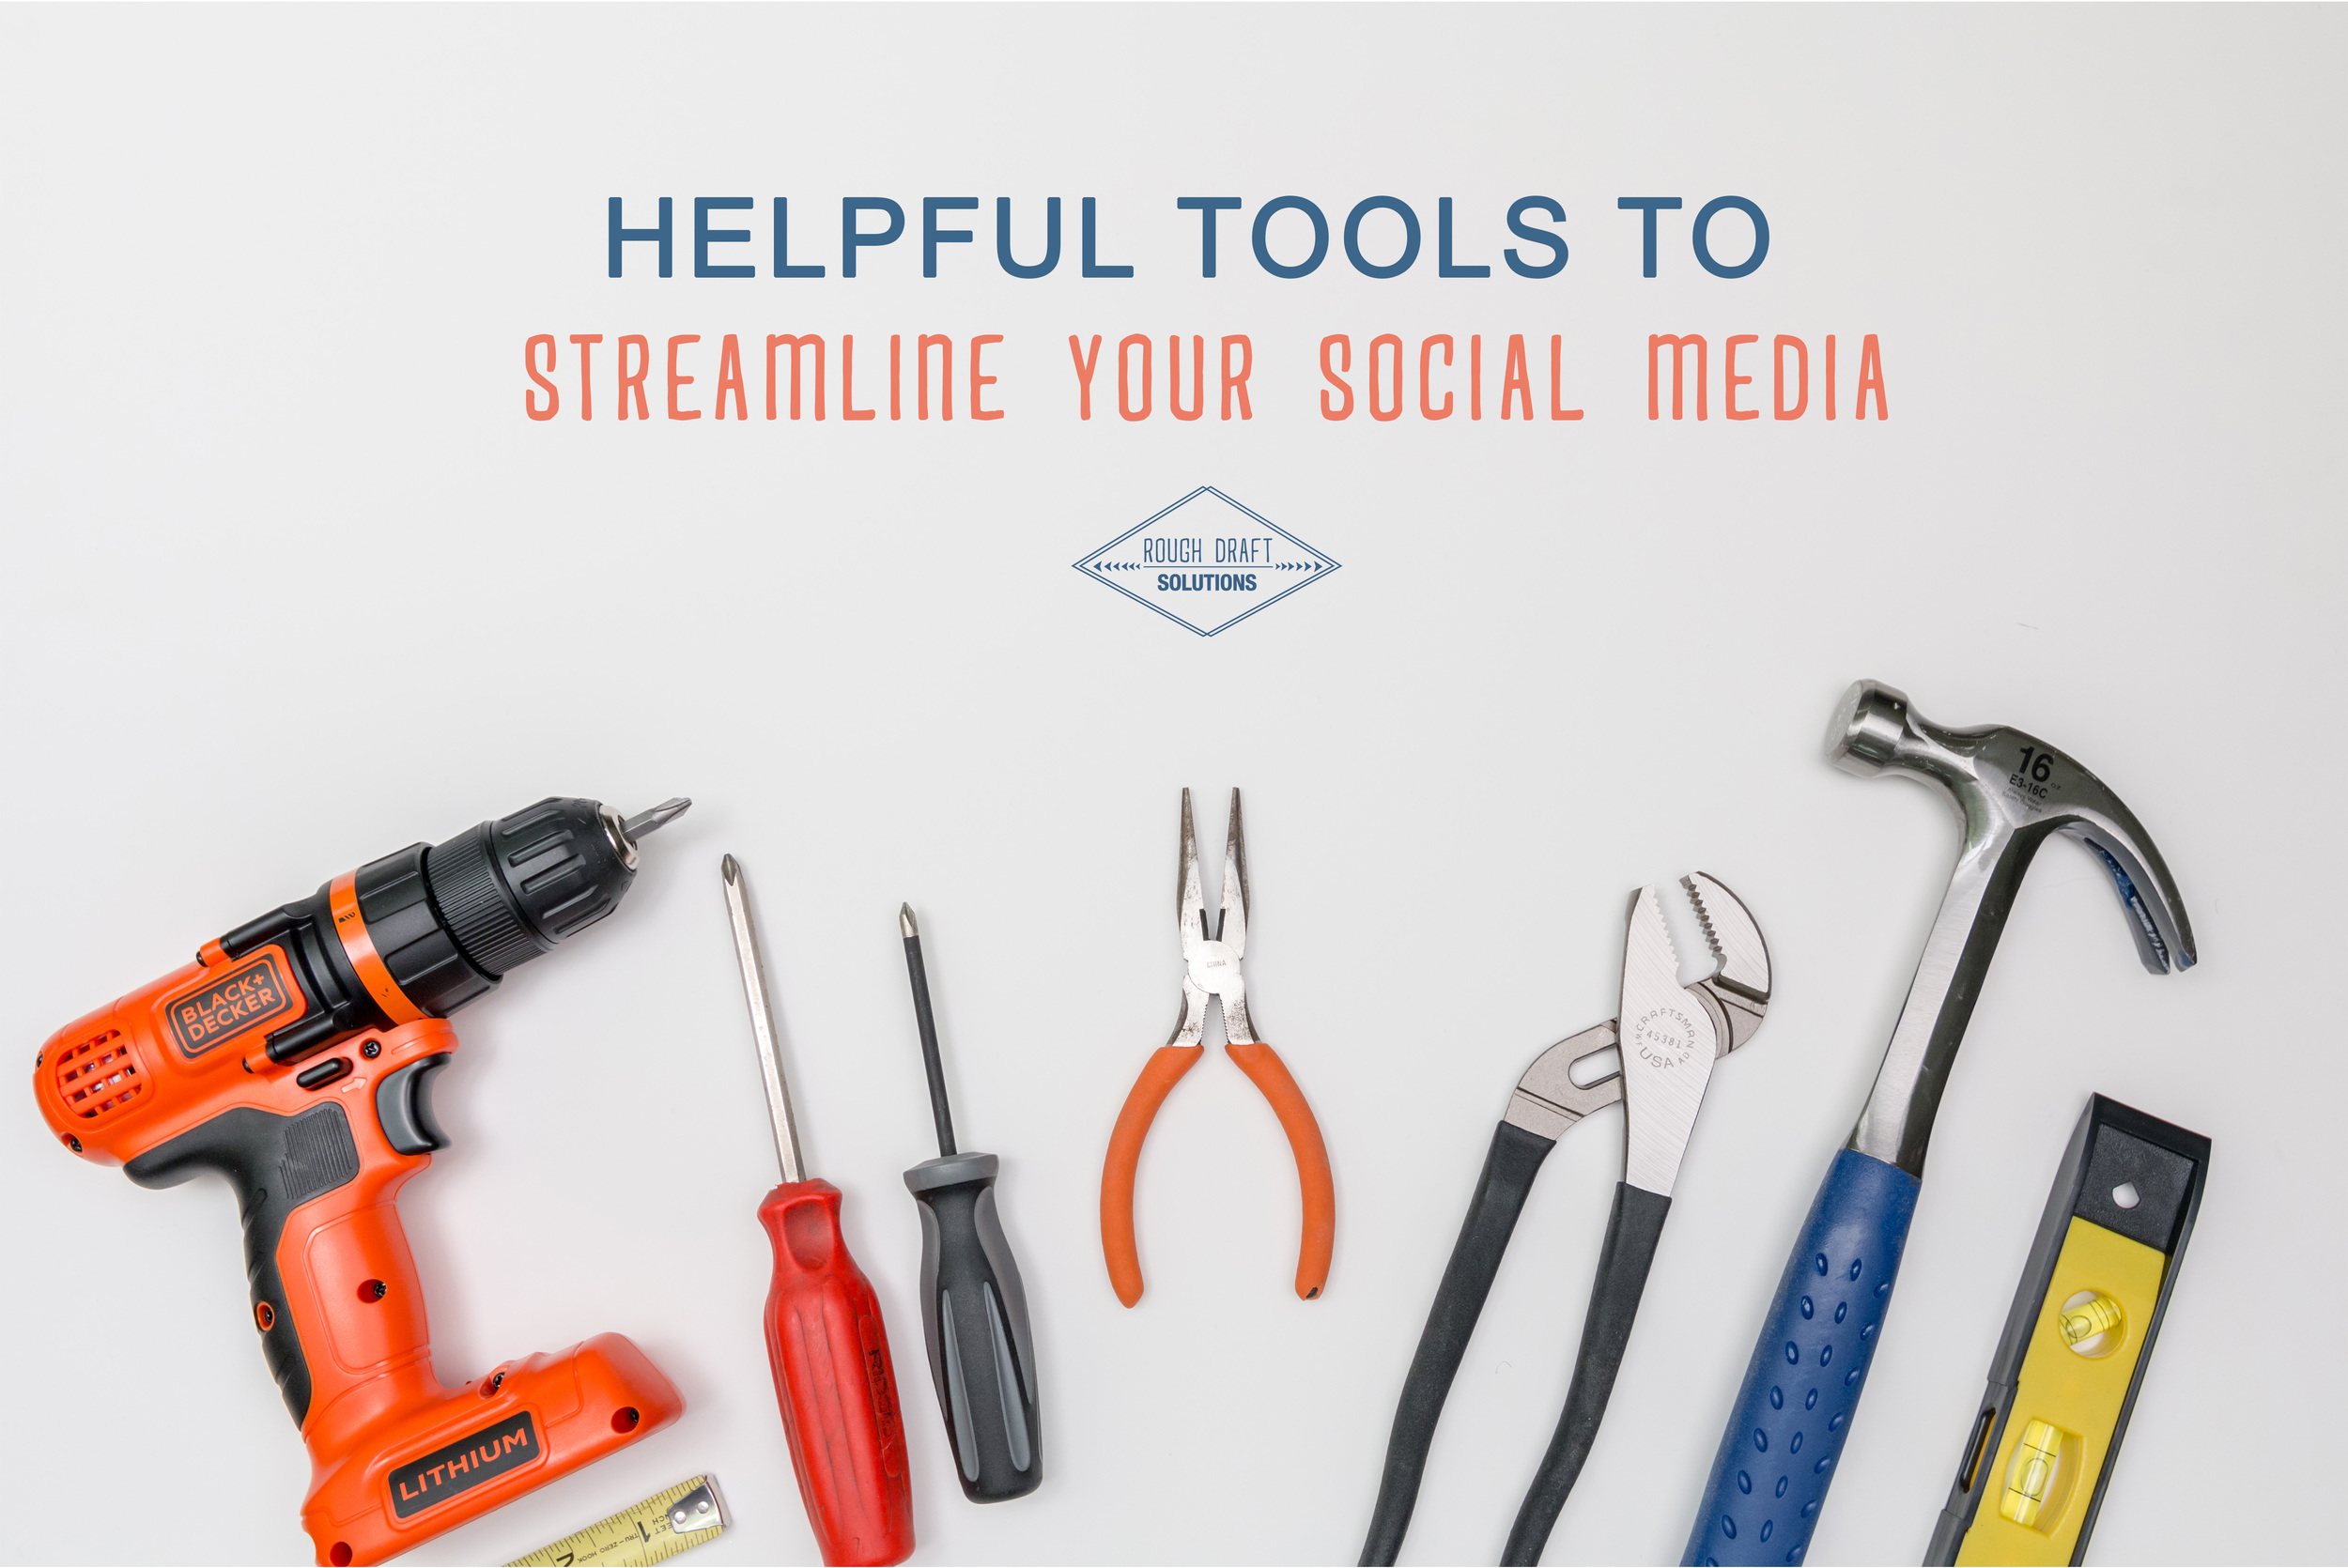 Tools to Streamline Your Social Media